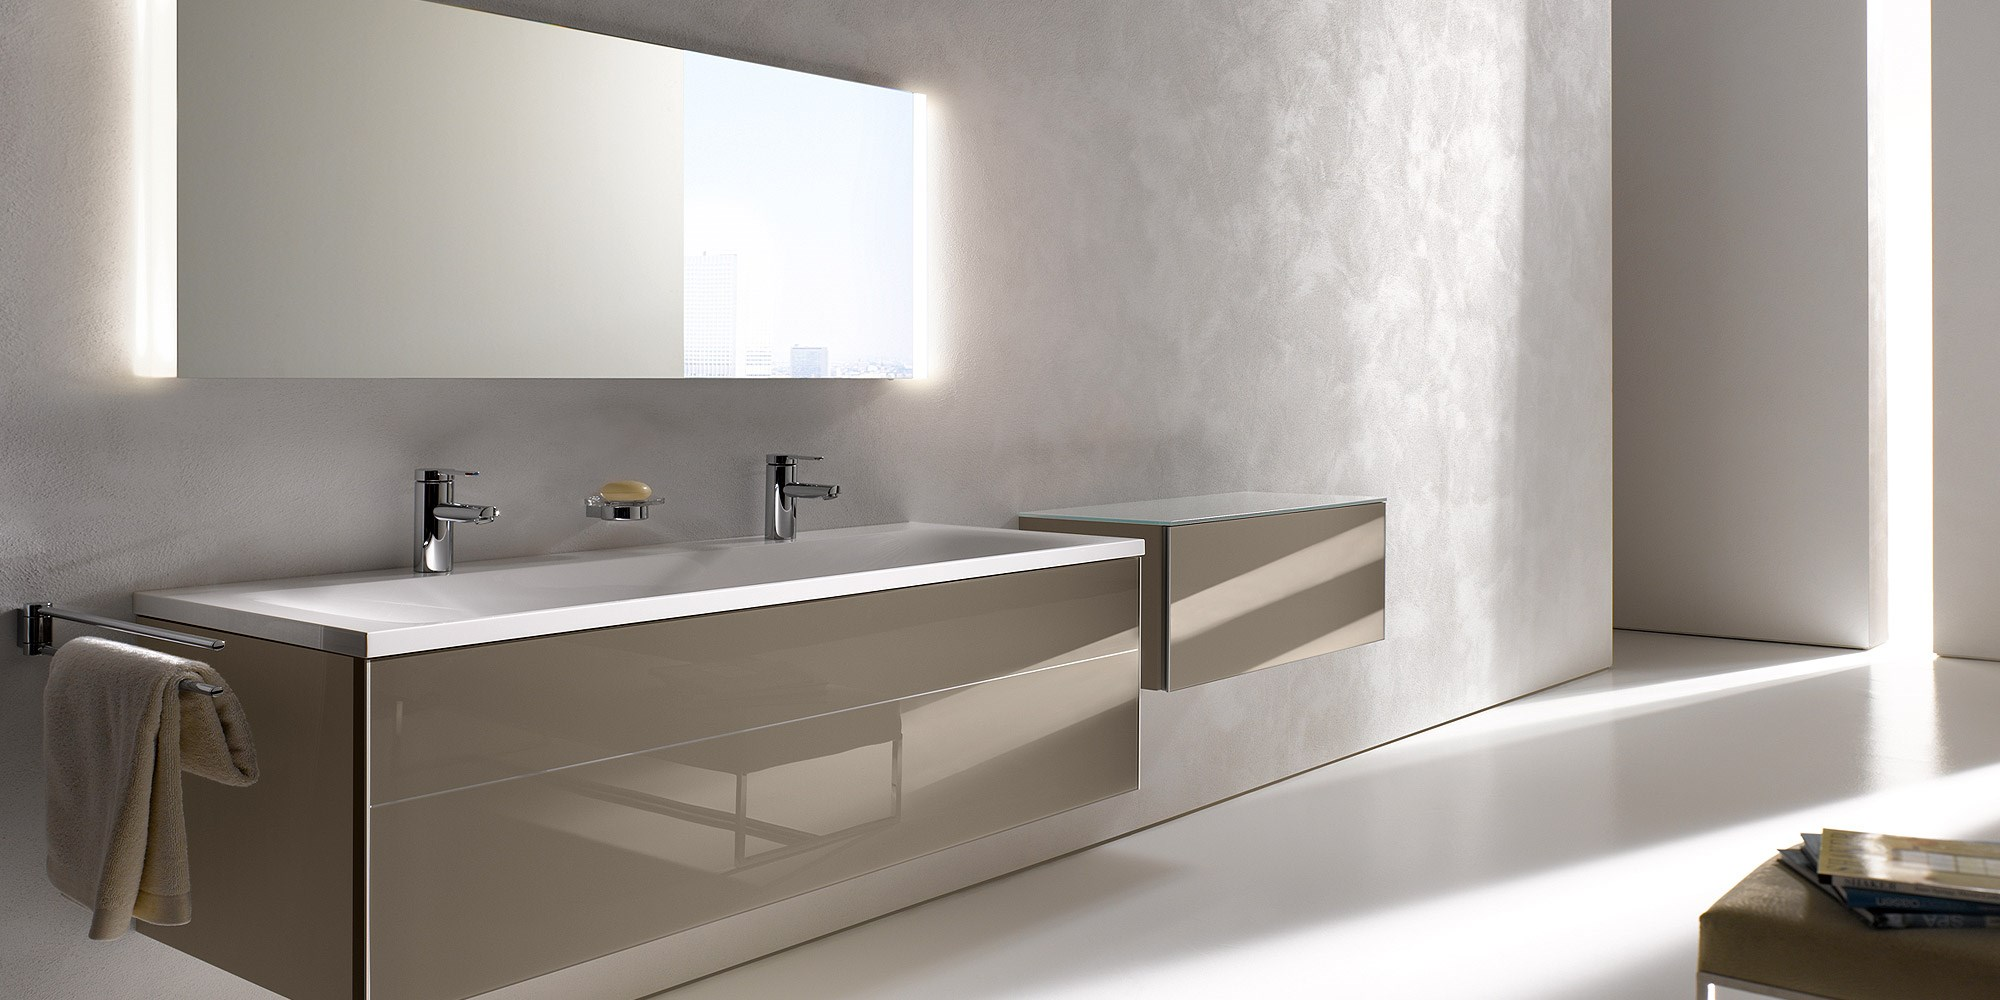 BATHROOMS BY KEUCO from Channel Island Ceramics